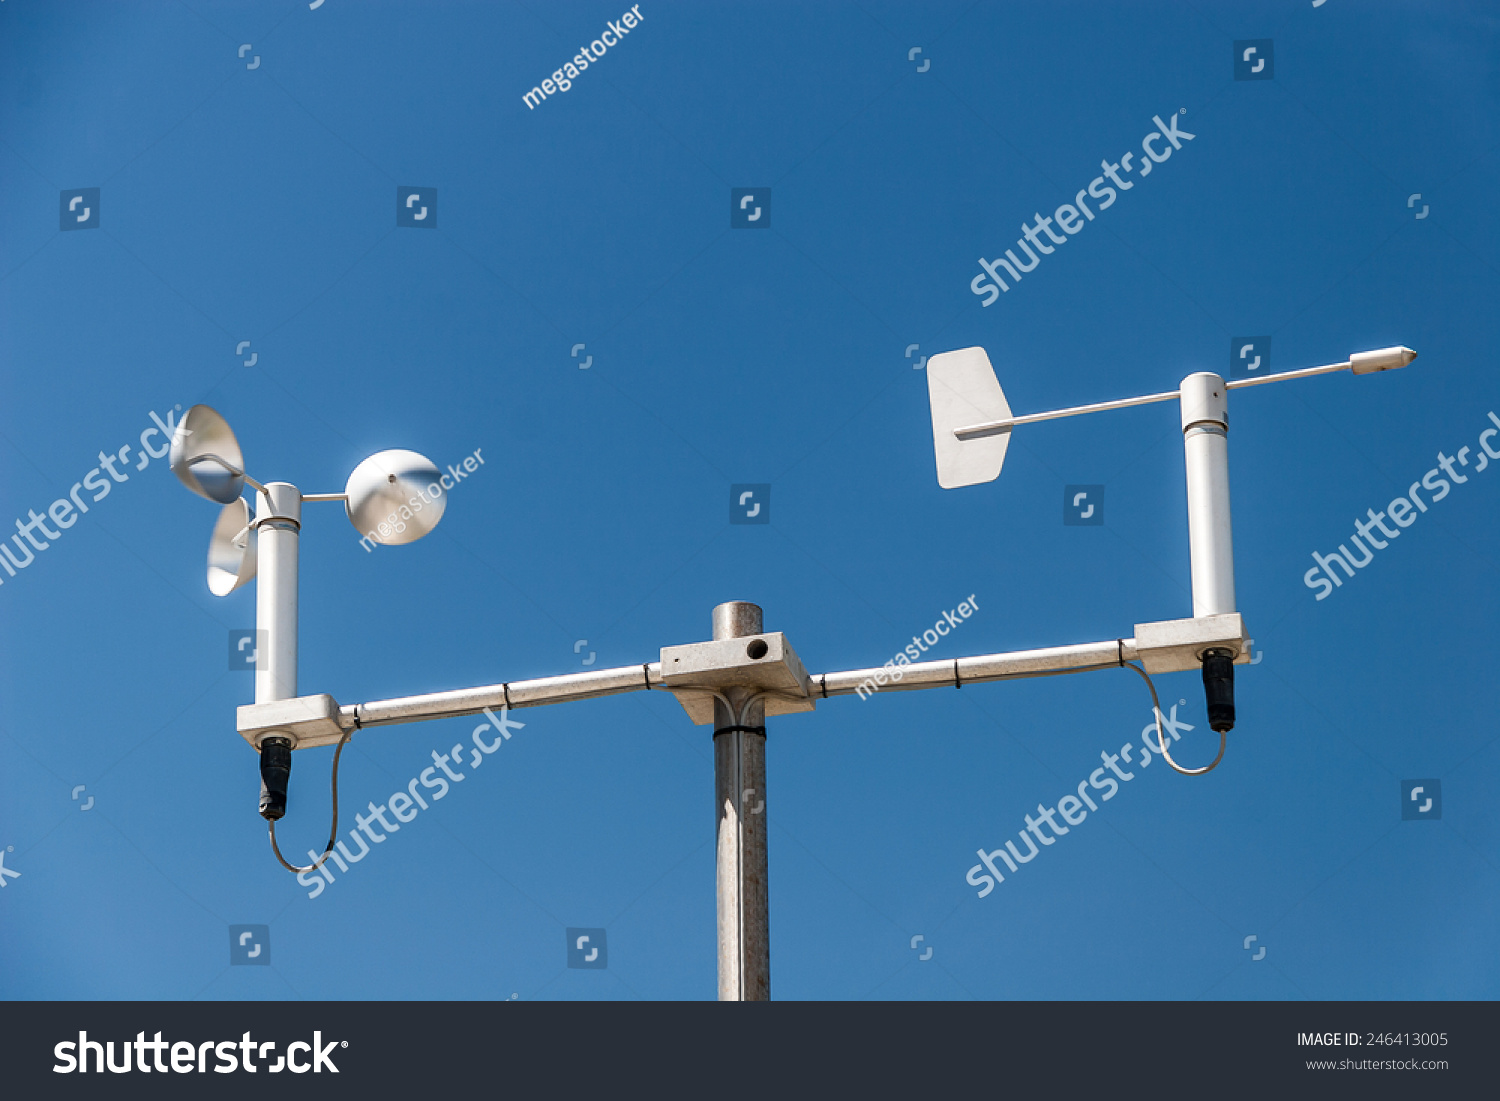 mini weather station against the blue sky stock photo. Black Bedroom Furniture Sets. Home Design Ideas